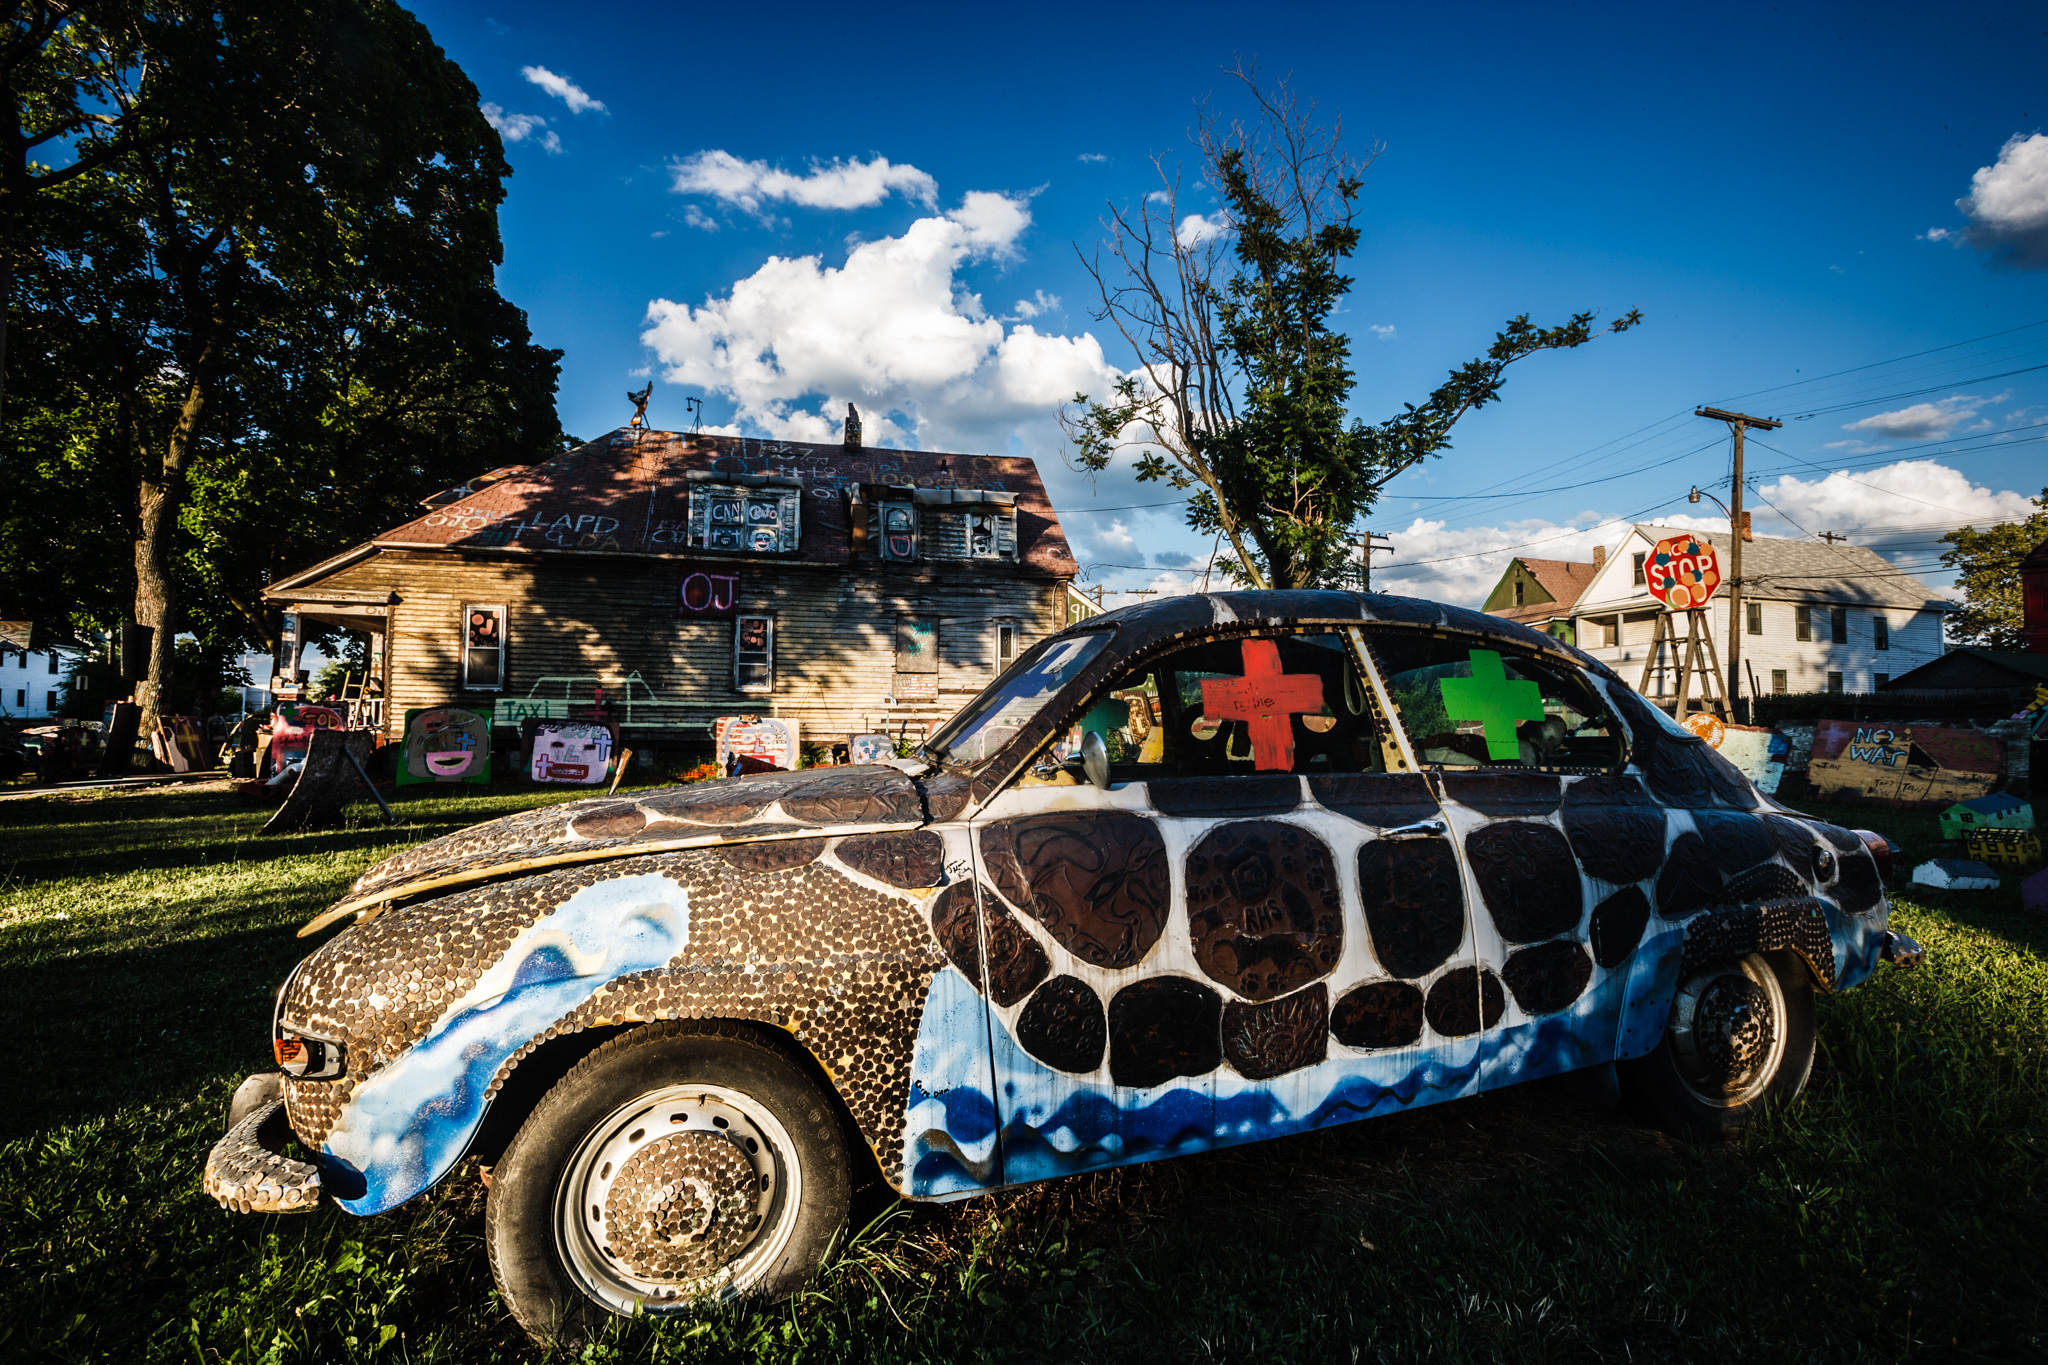 My Heidelberg Project Images Picked up in Australia